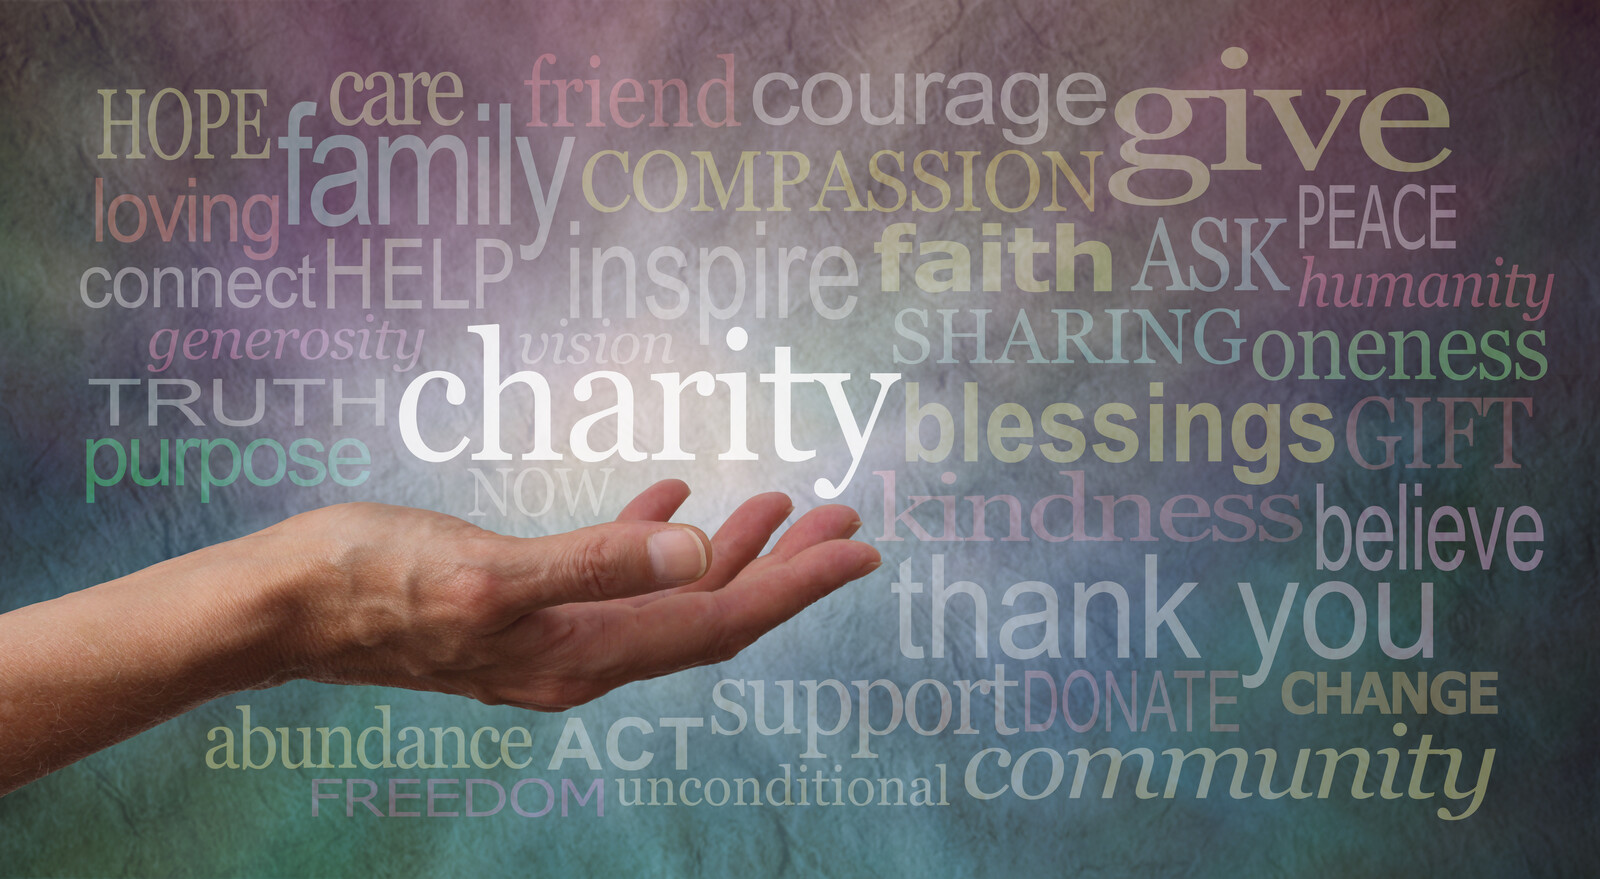 Woman's outstretched hand with the word 'charity' in white above palm, surrounded by a word collage